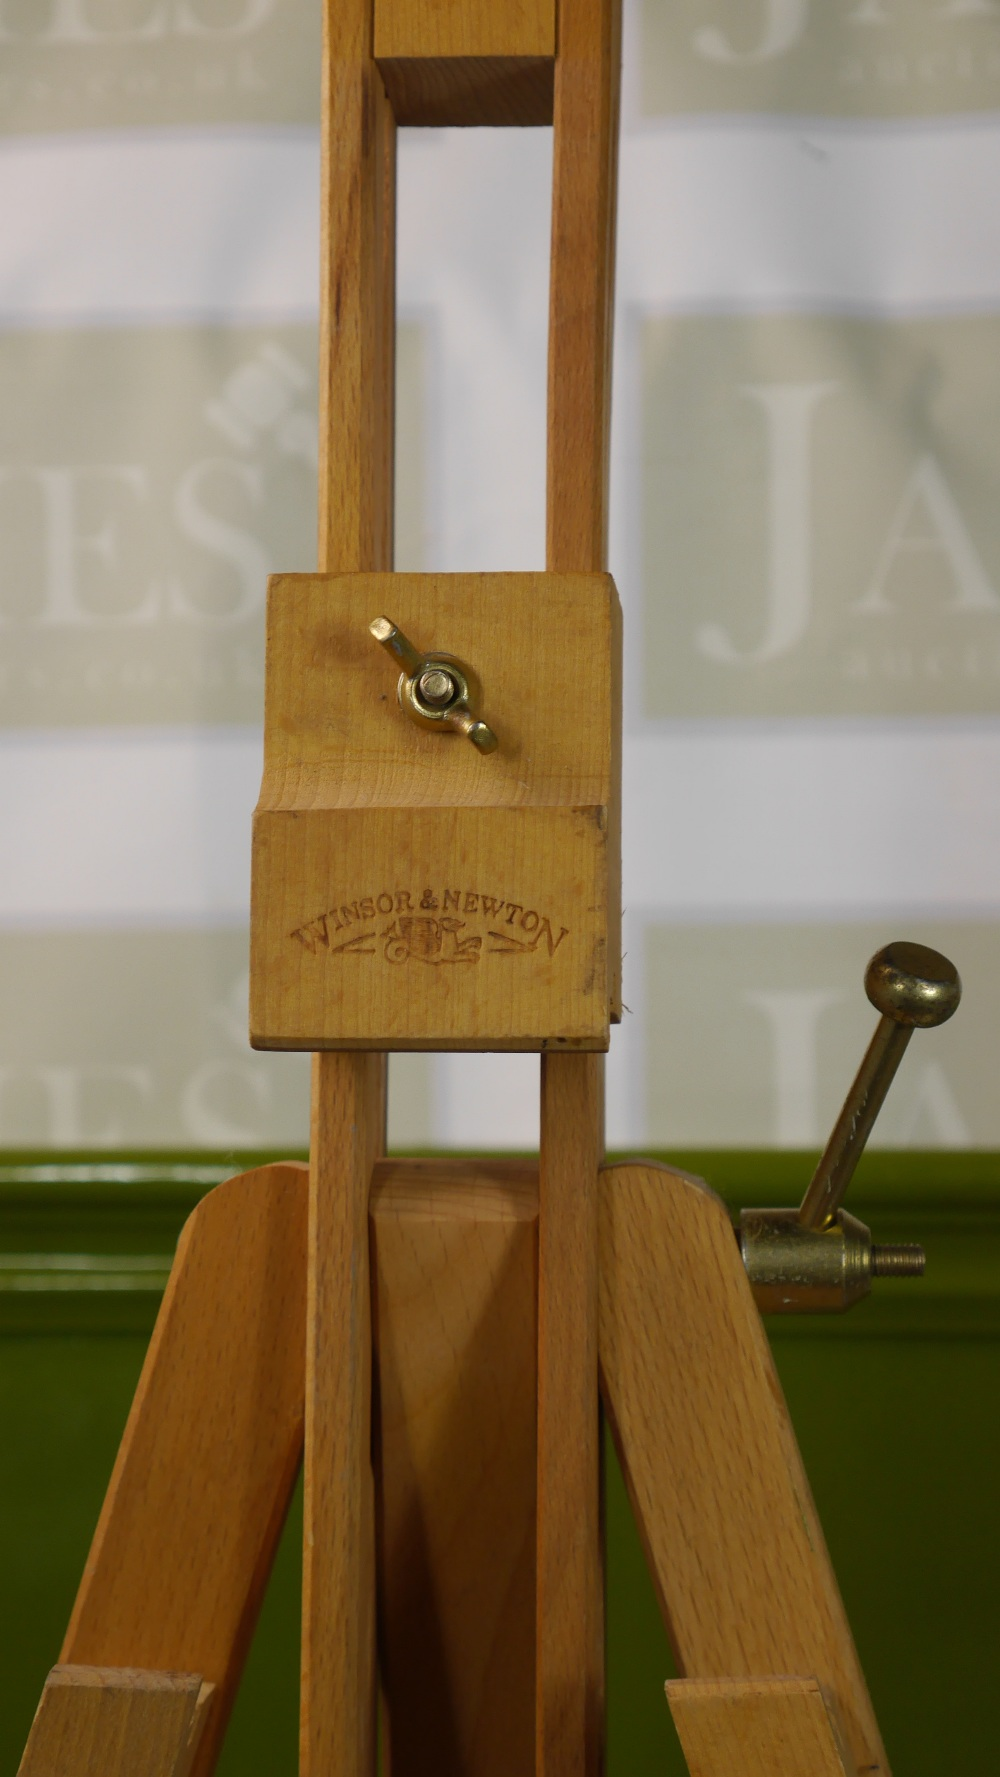 Lot 13 - Winsor and Newton Artist/Studio Easel